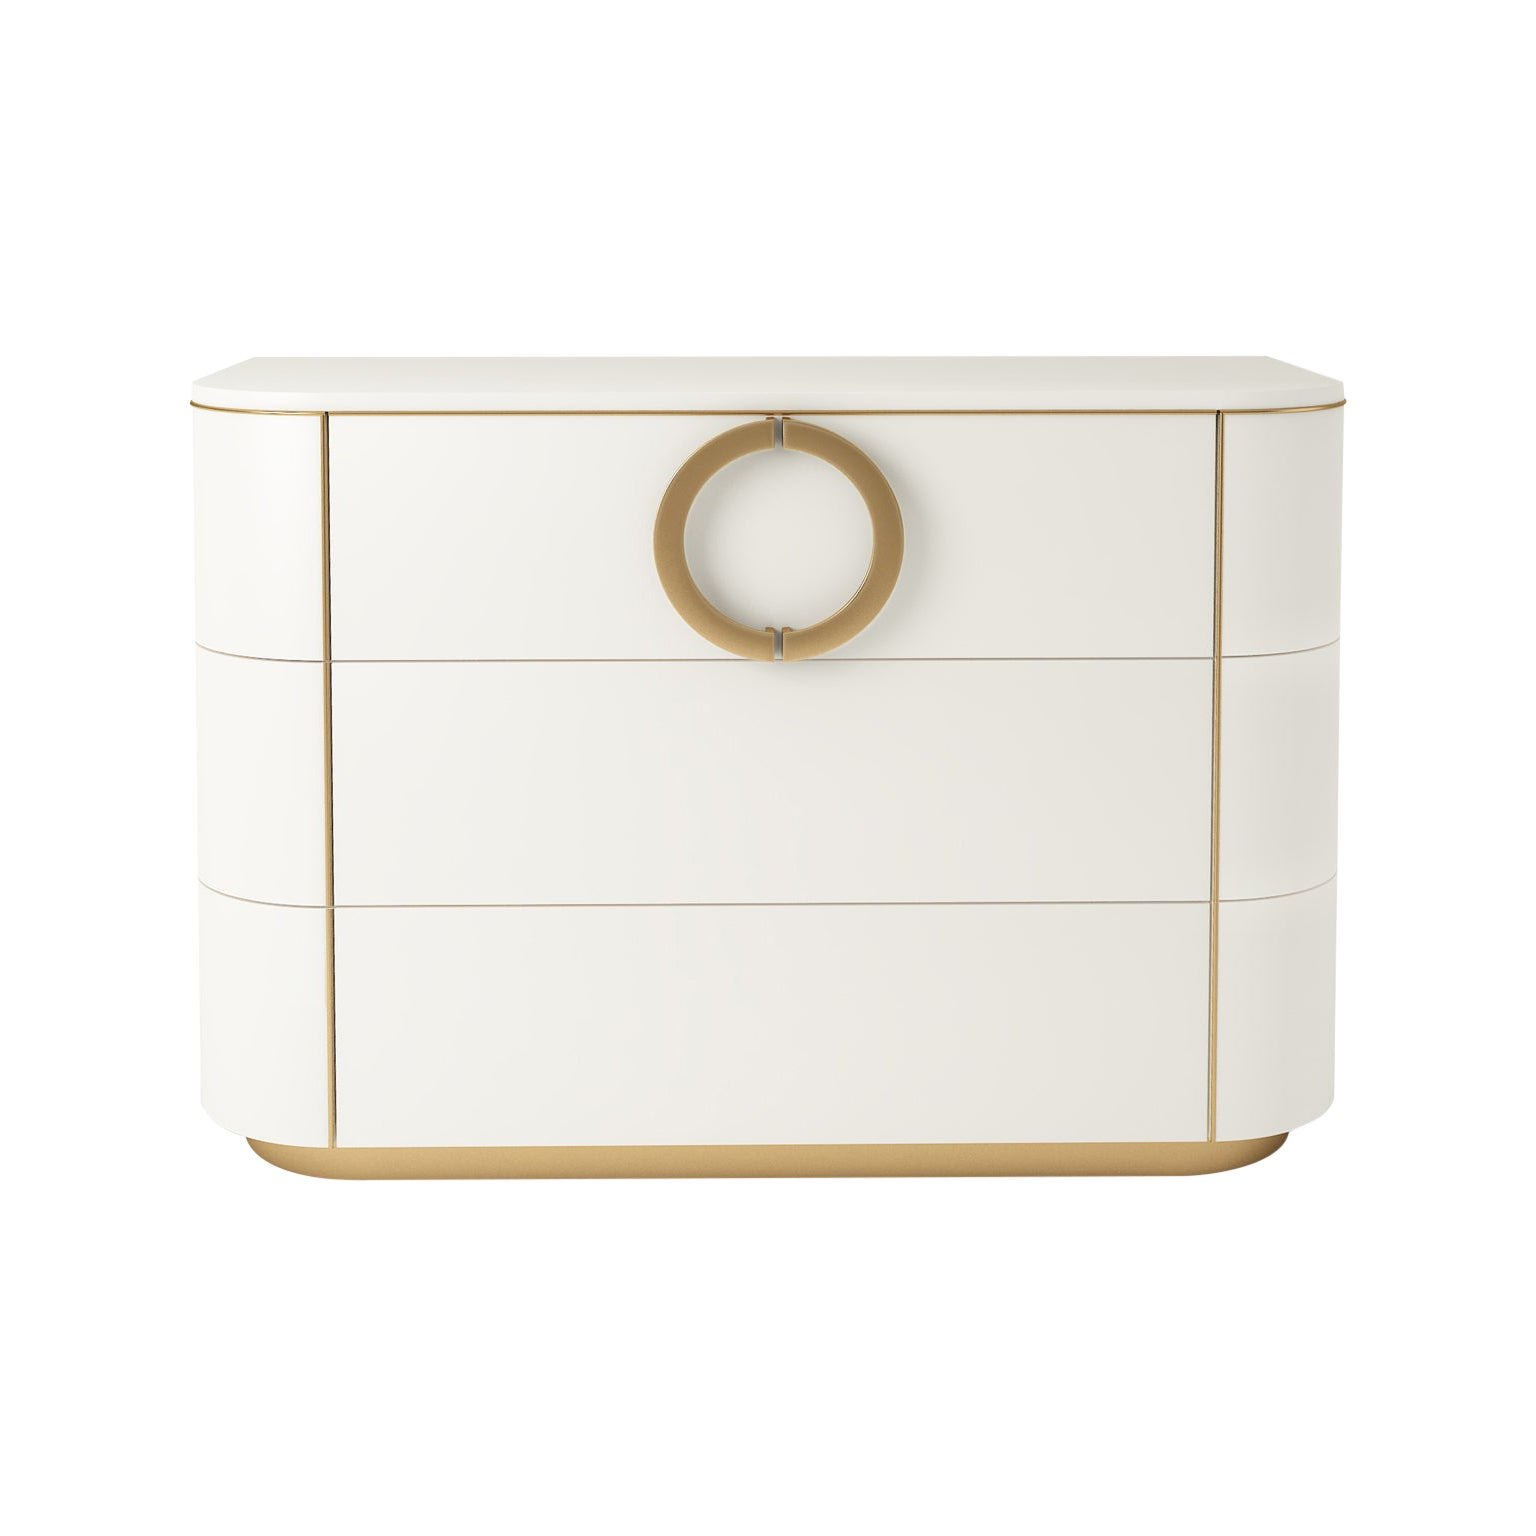 Isabella Costantini, Italy, Maddalena Dresser with Three Drawers